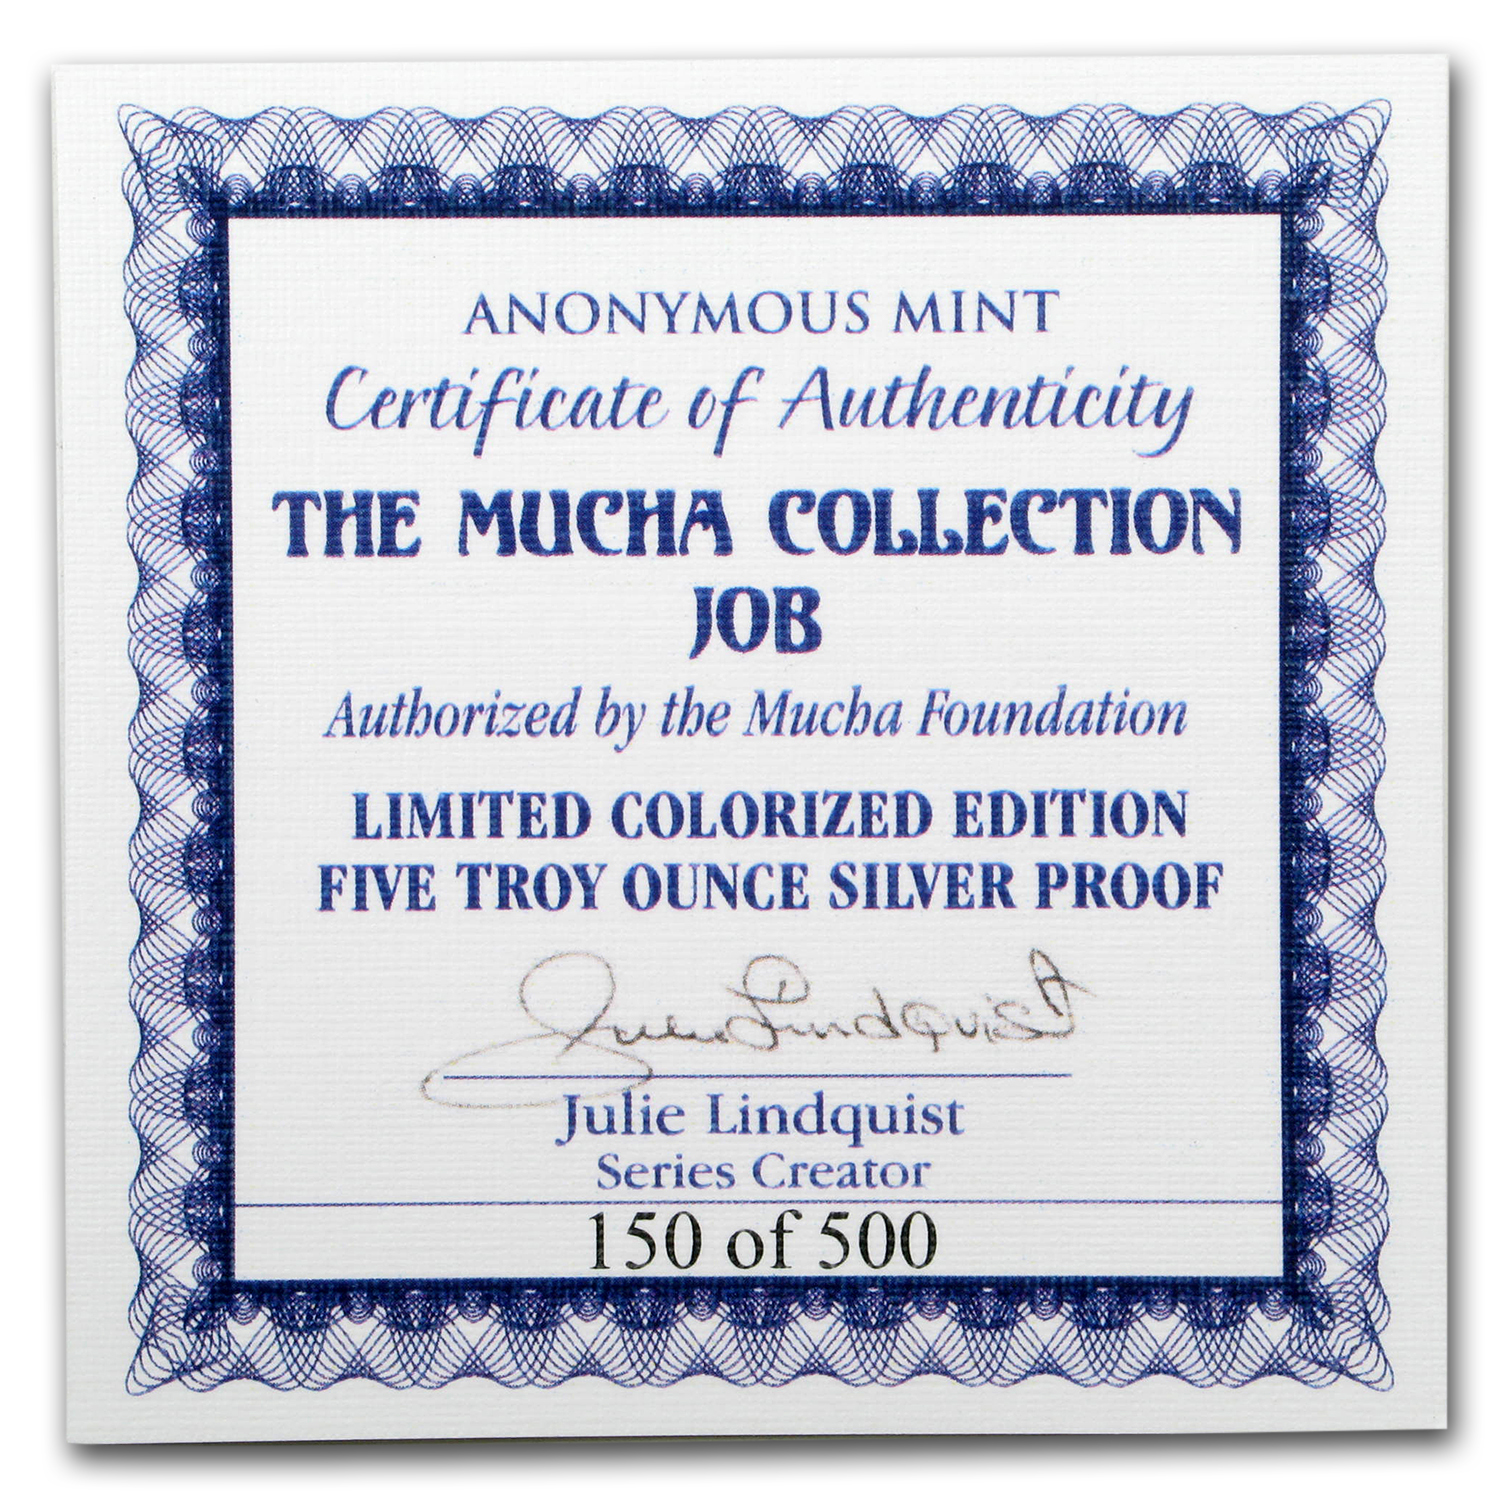 5 oz Silver Colorized Proof Round Mucha Collection (JOB)